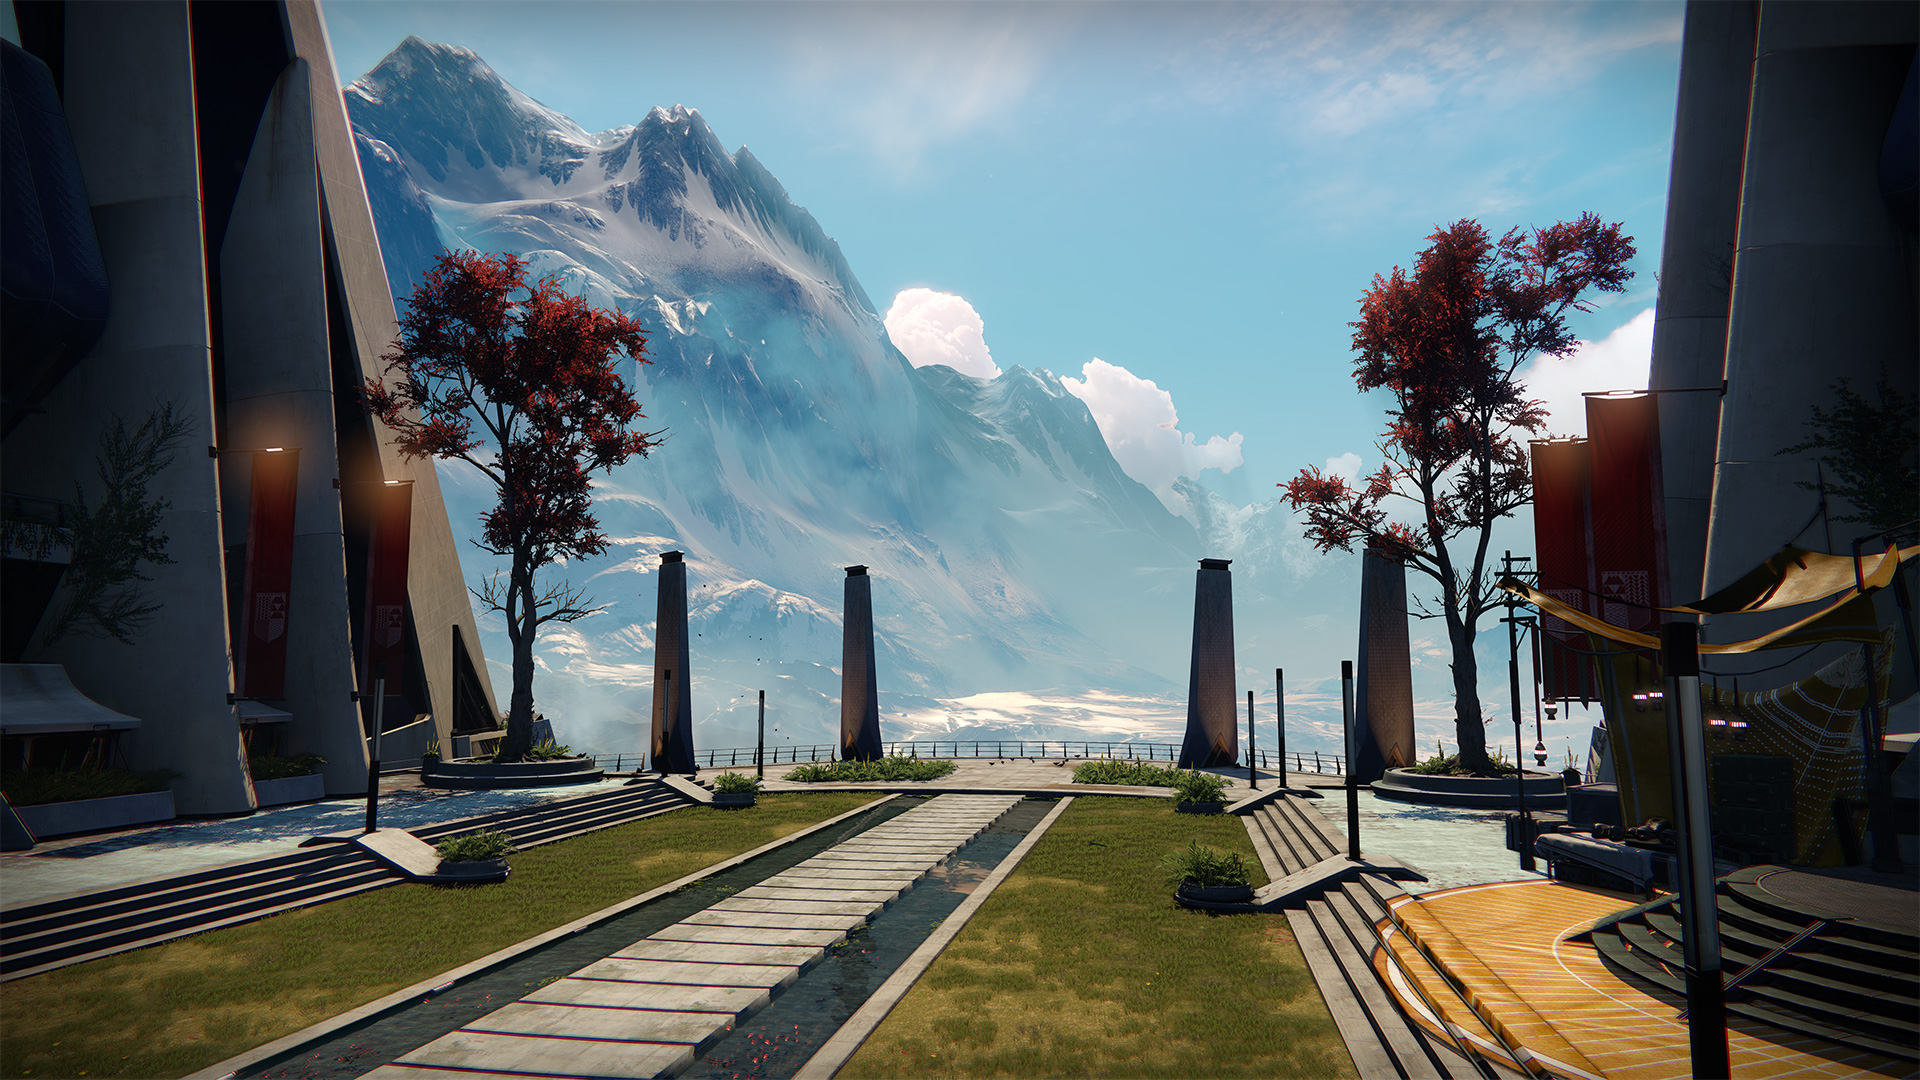 Destiny sleuth uses science to conclude The Last City is likely located in Chile